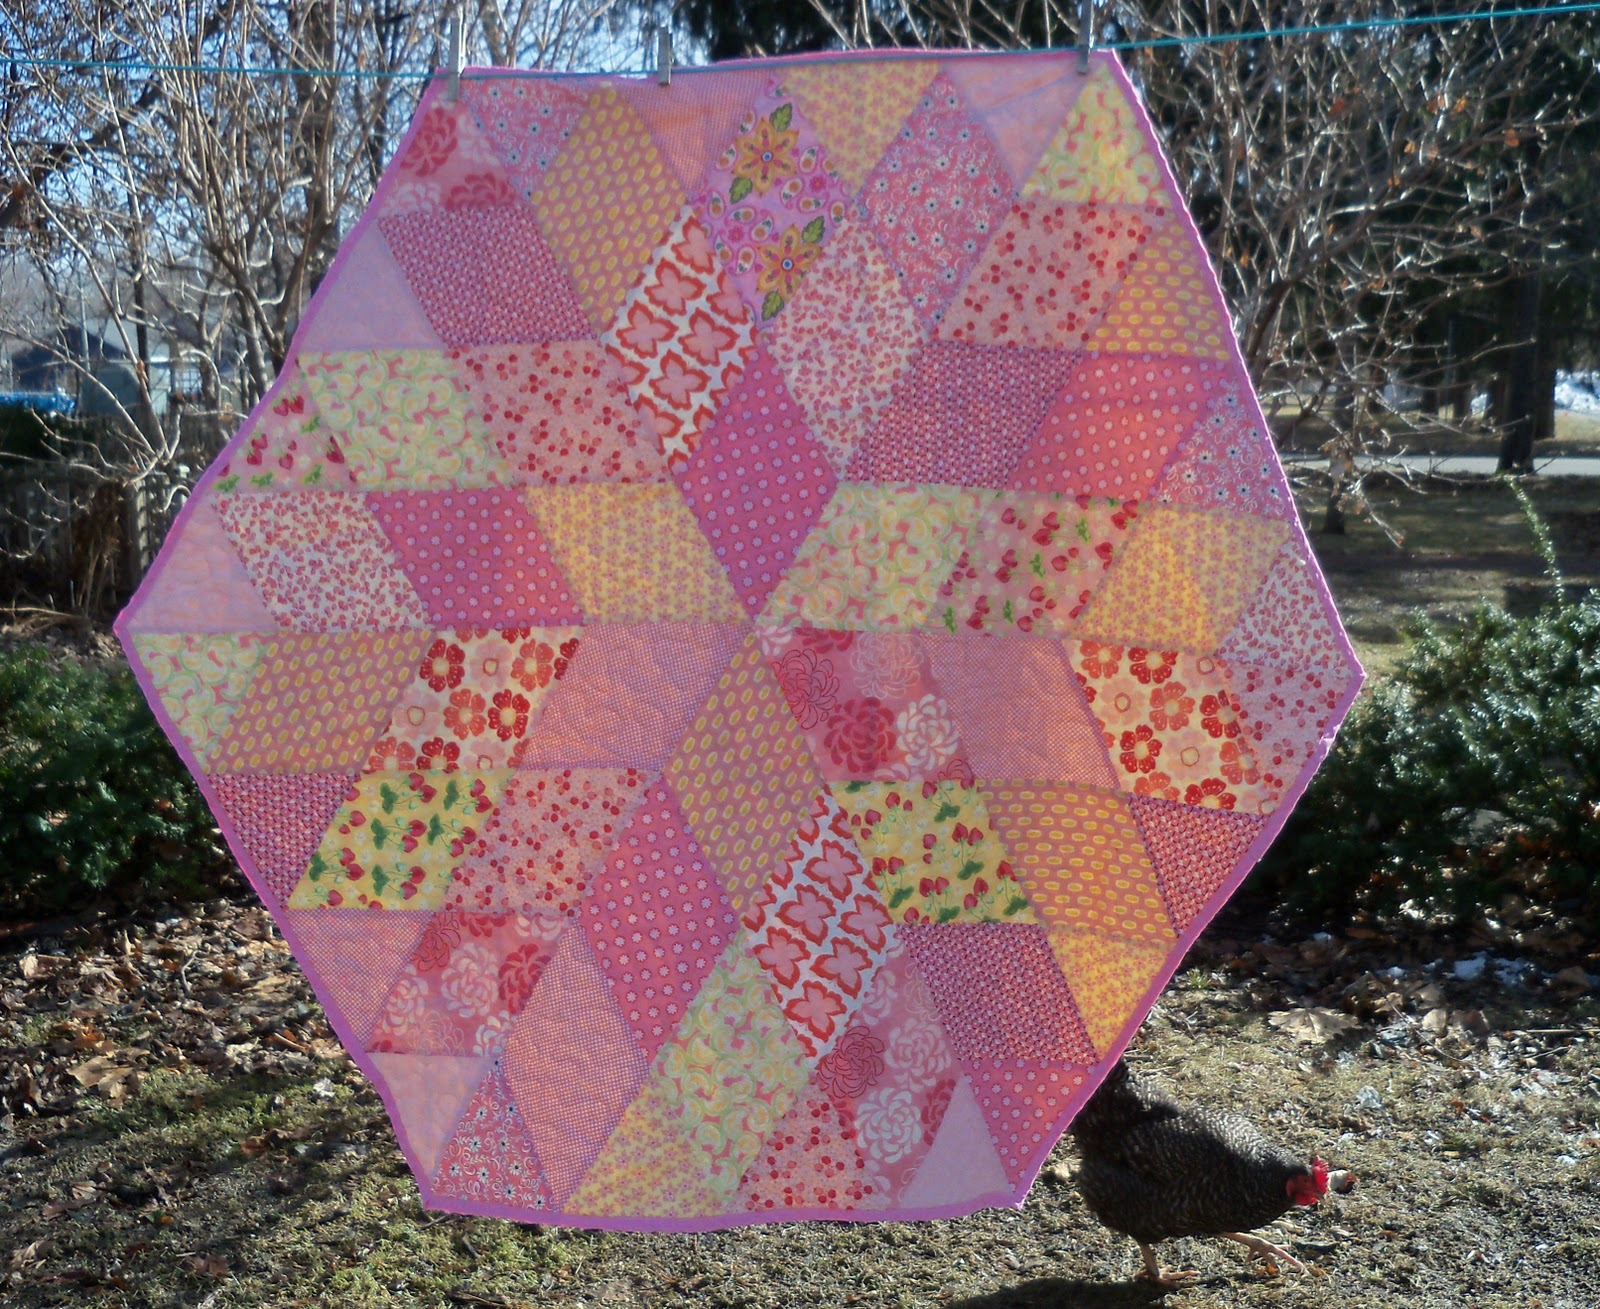 Sewn diamond quilt a tutorial diamond quilt a tutorial jeuxipadfo Gallery